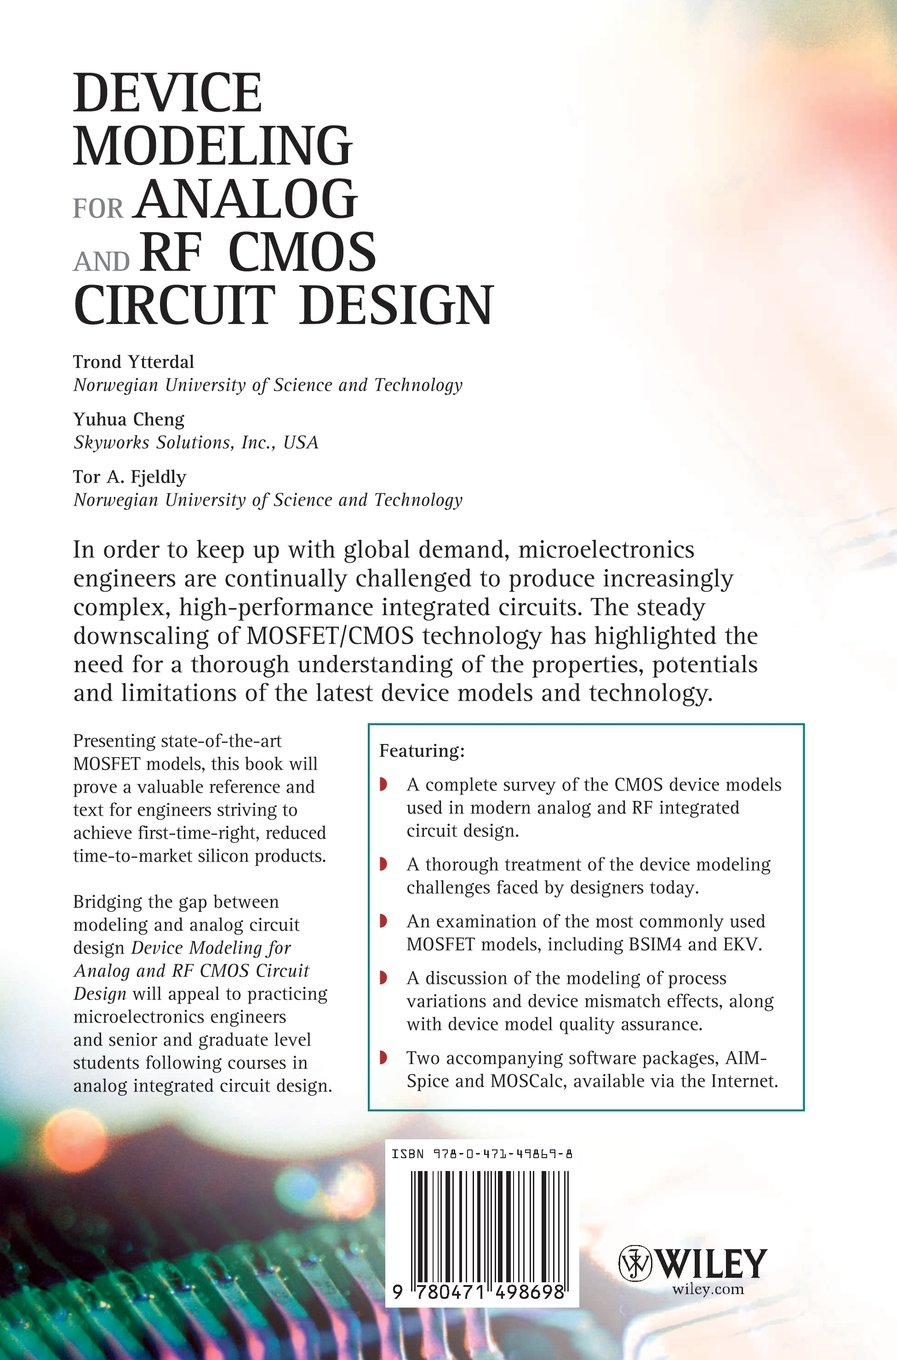 Buy Device Modeling For Analog And Rf Cmos Circuit Design Book Mosfet Online At Low Prices In India Reviews